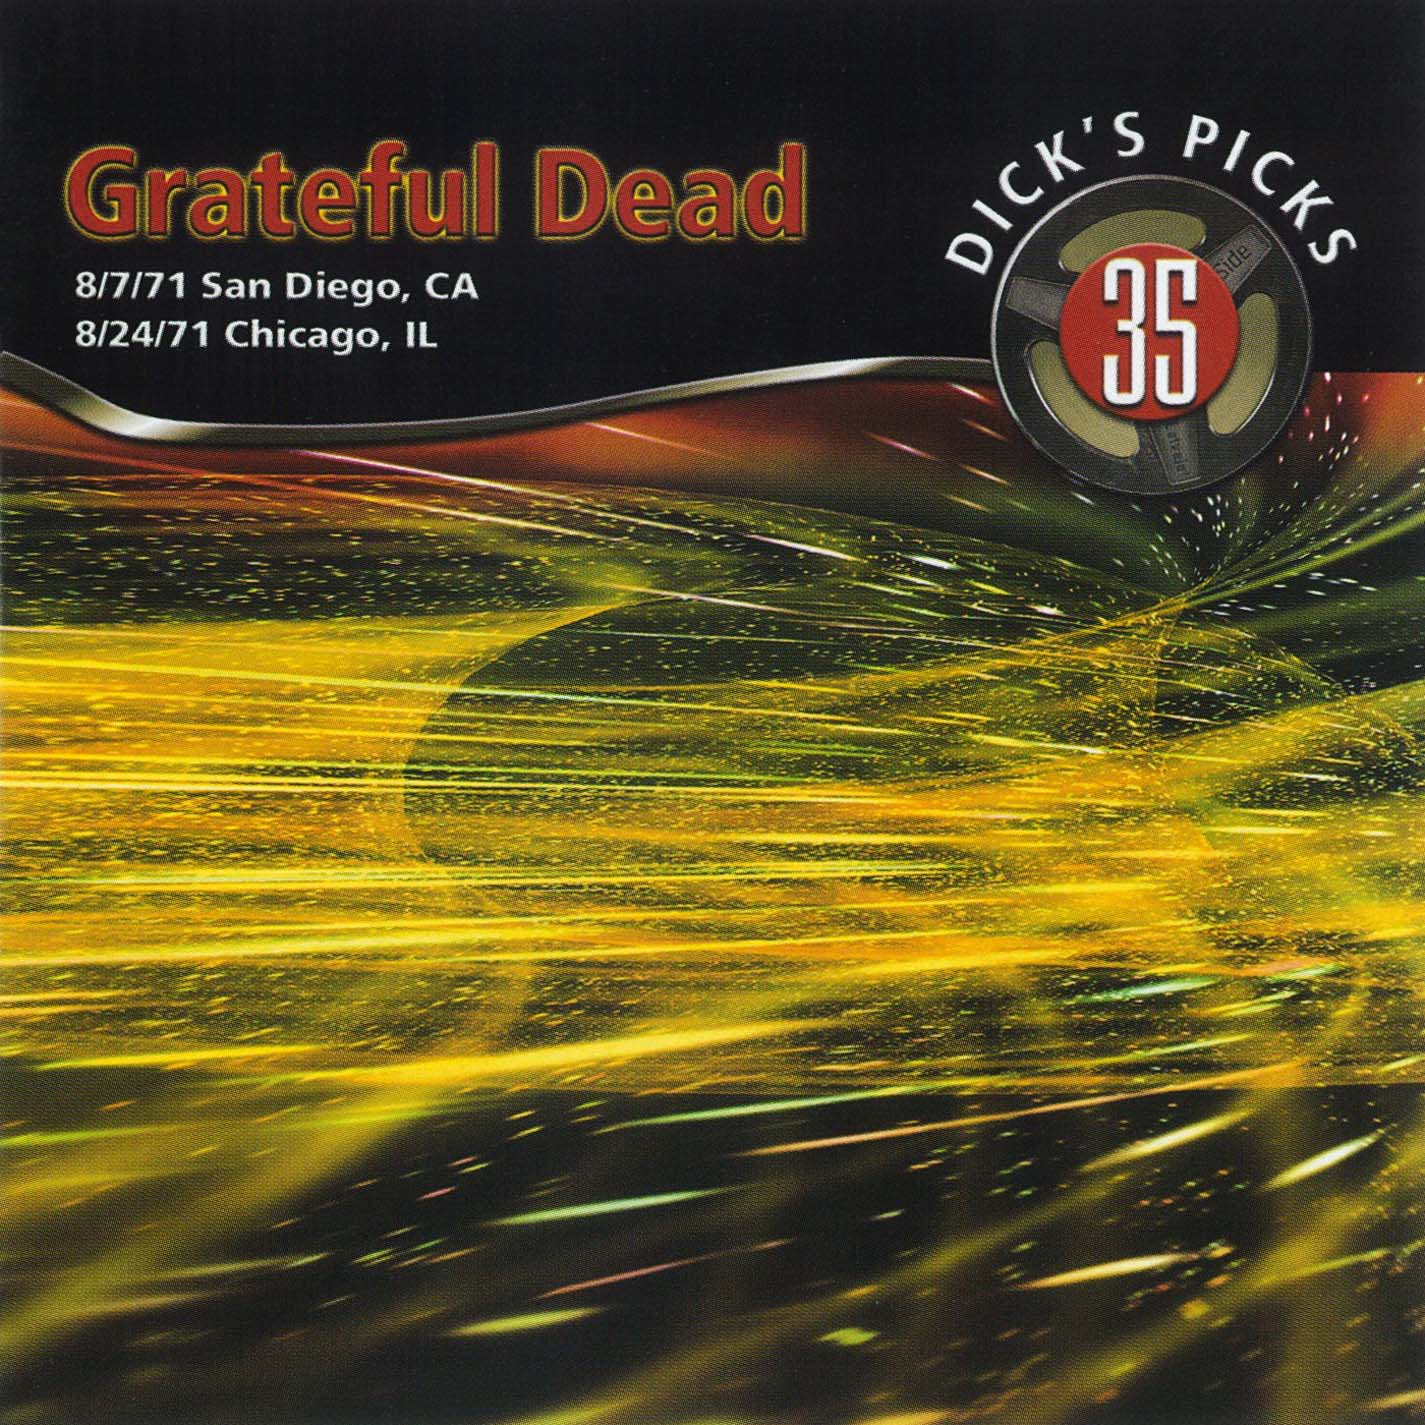 Grateful Dead Dick's Picks 35 album cover artwork